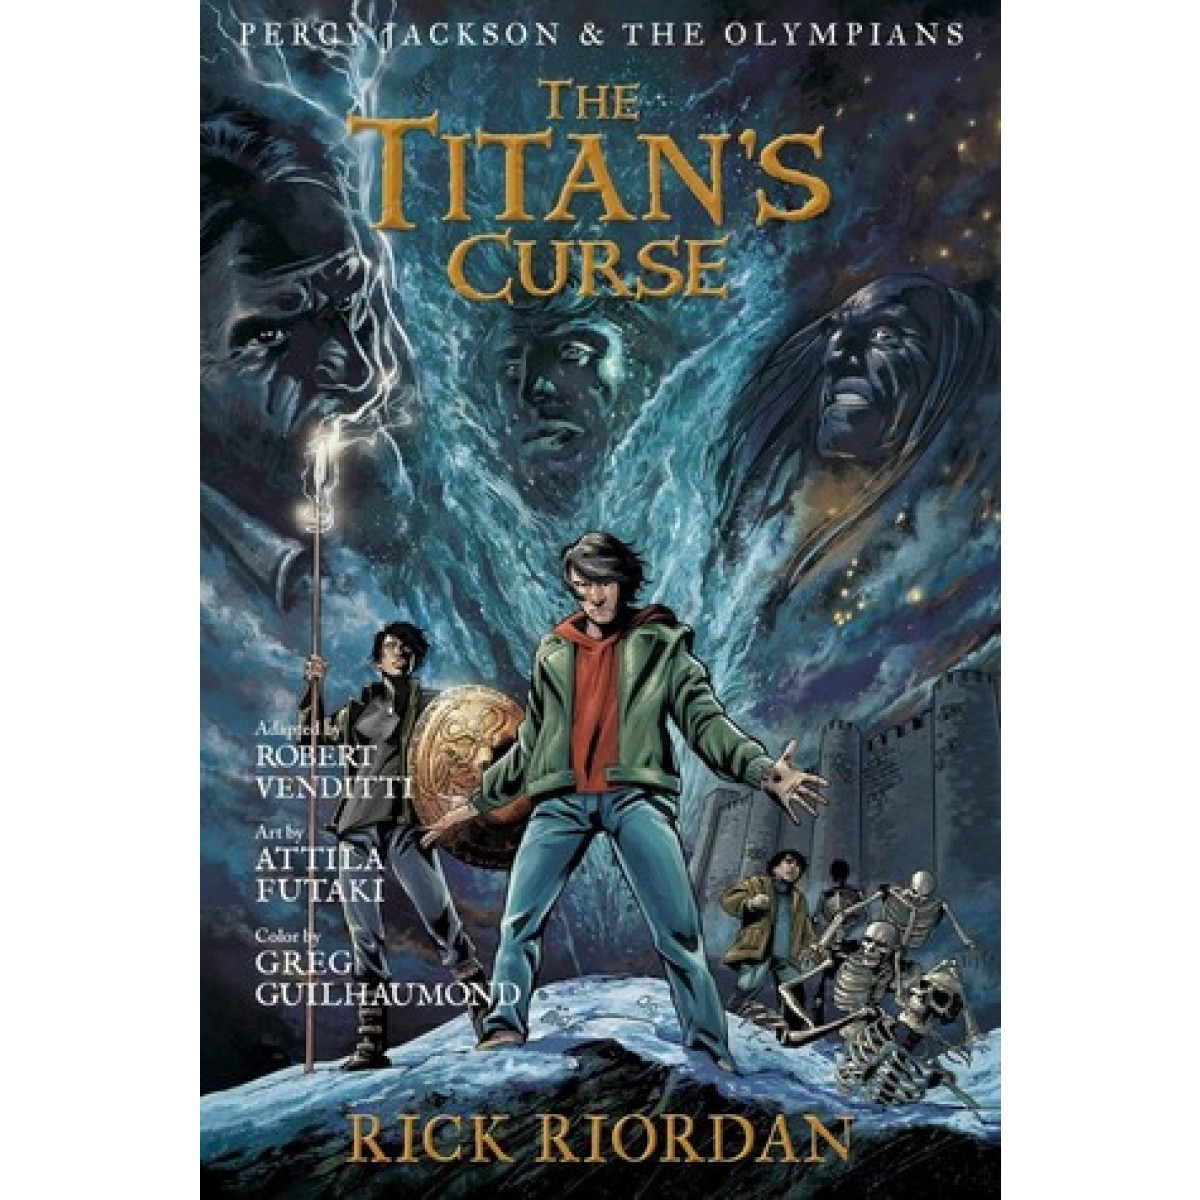 Percy Jackson And The Olympians The Titan's Curse: The